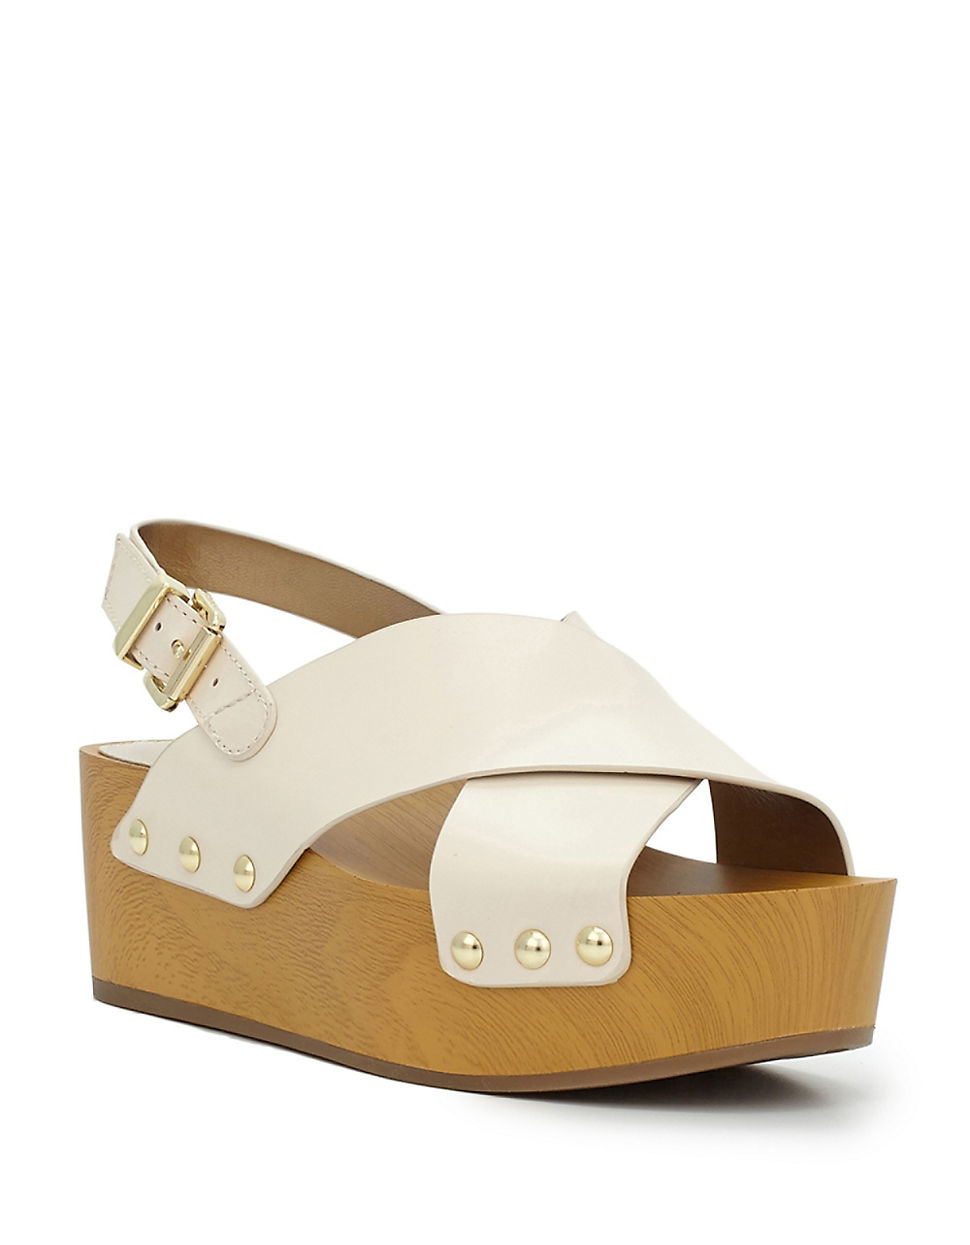 4861d84fd Sam Edelman Studded Leather Wooden Wedge Sandals in White - Lyst